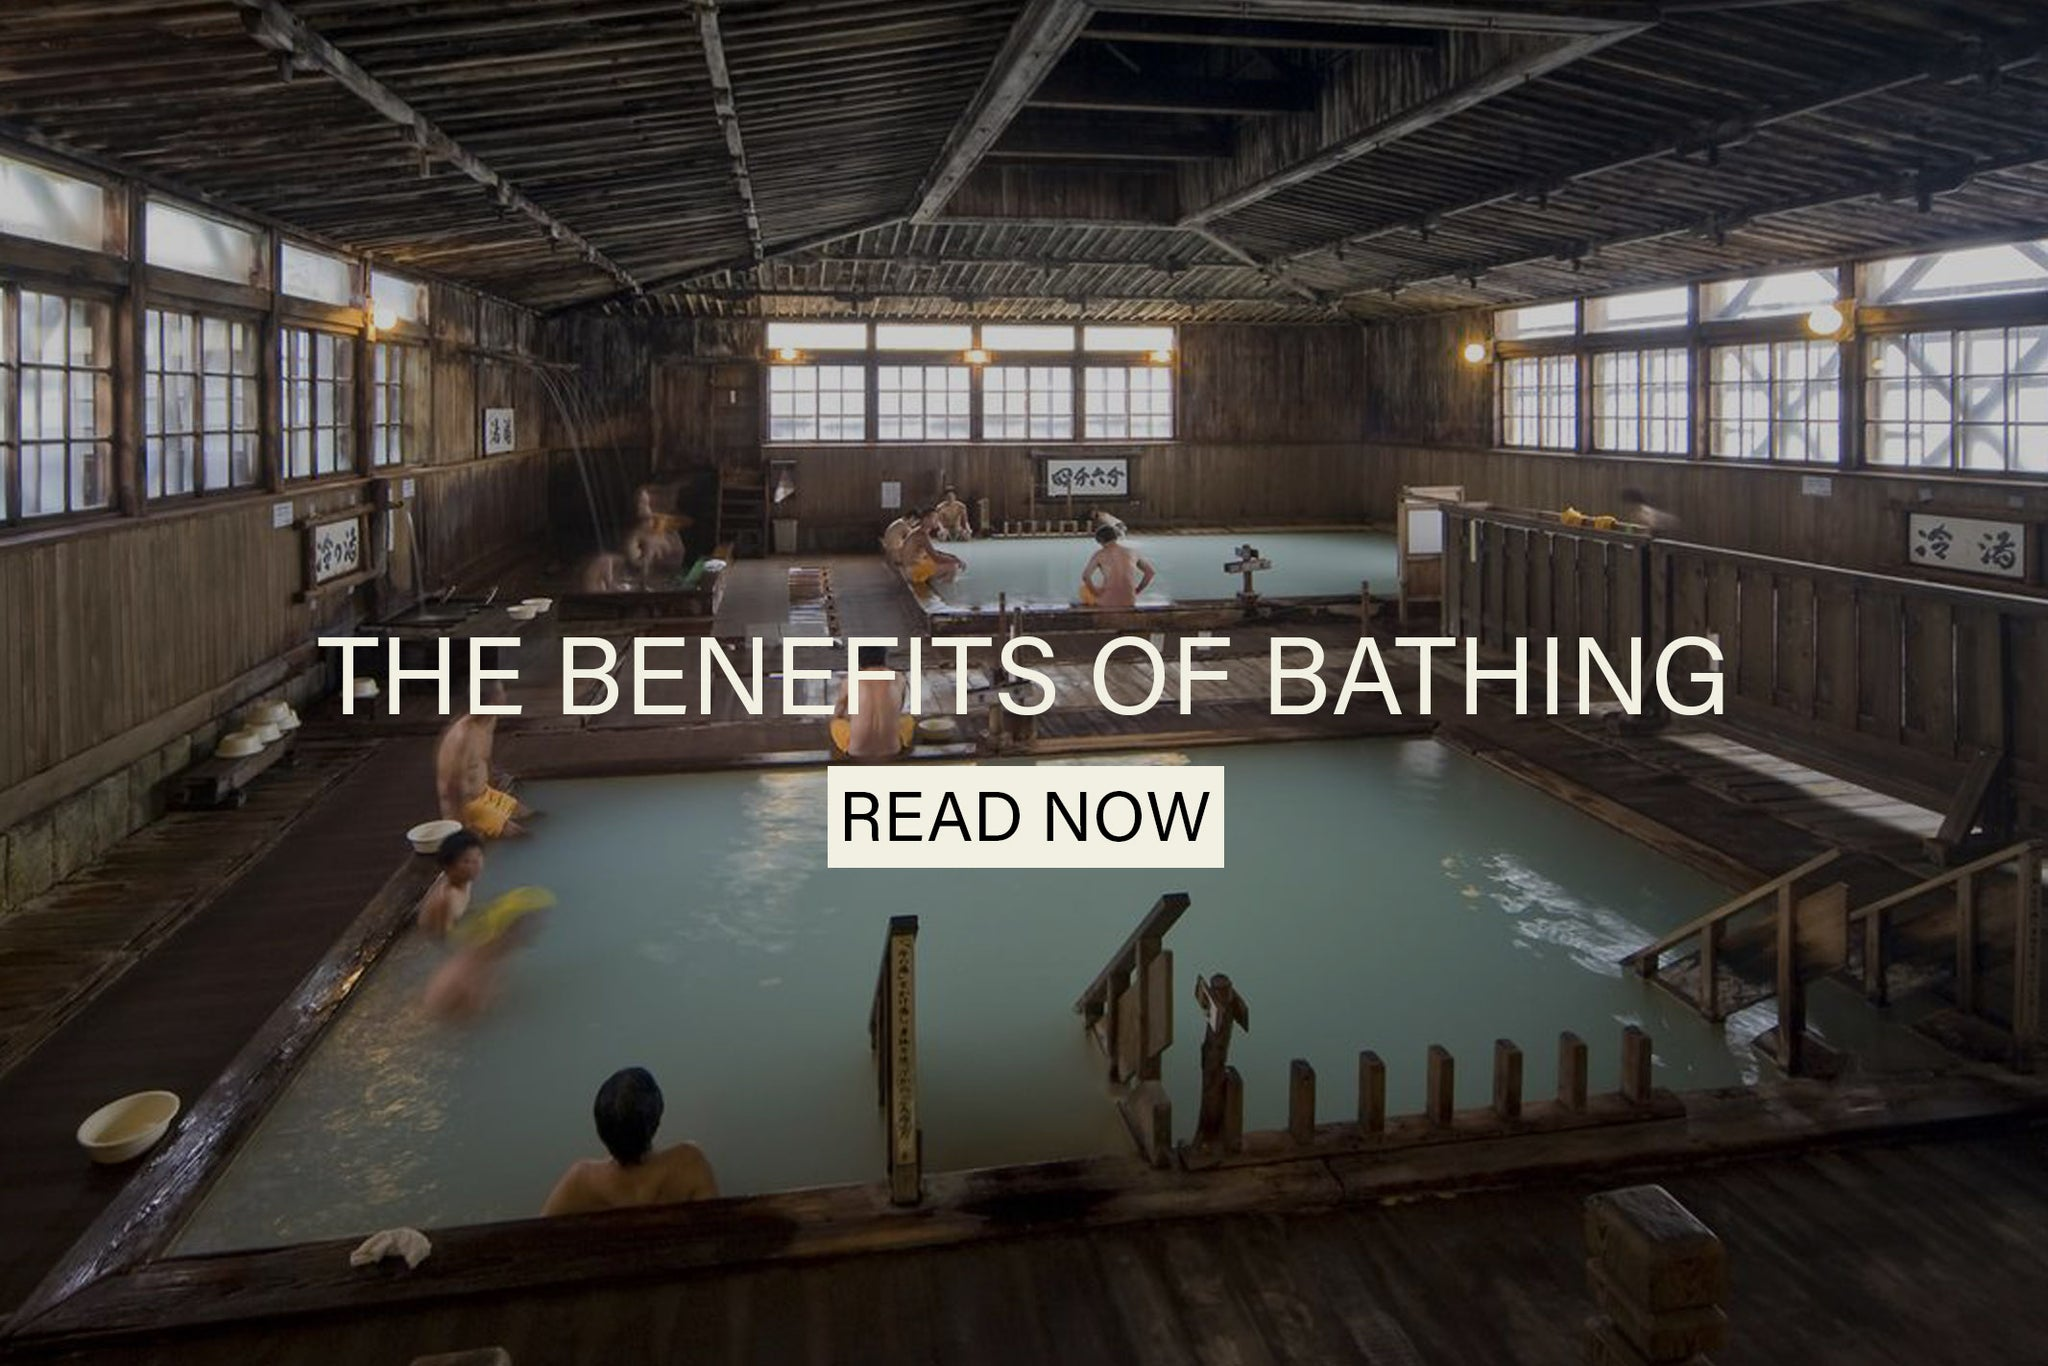 The Benefits Of Bathing